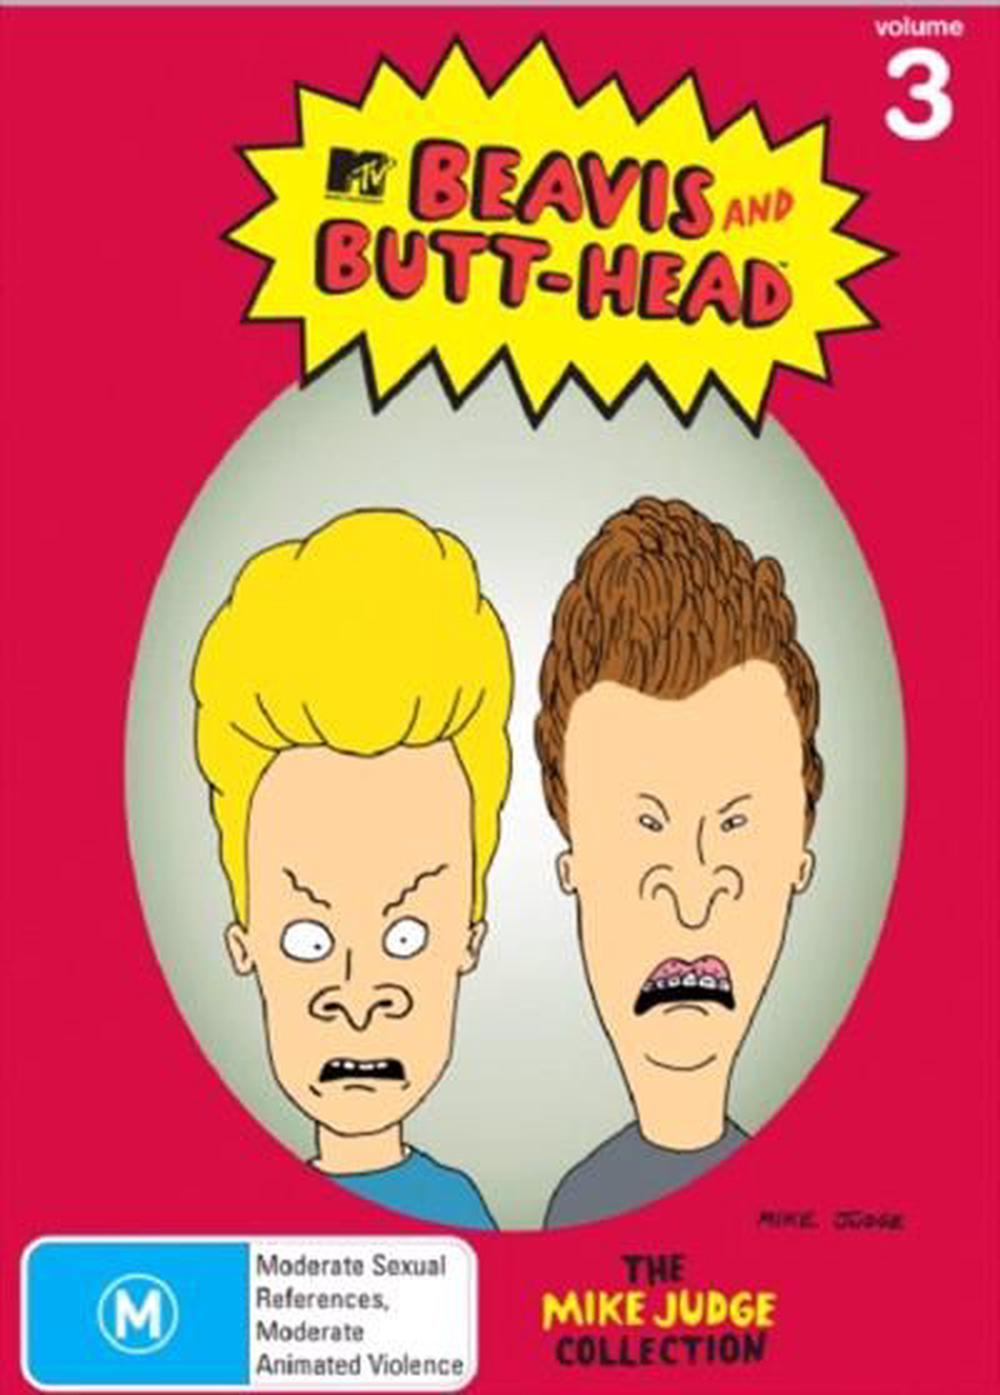 beavis and butt-head: volume 3 (the mike judge collection), dvd